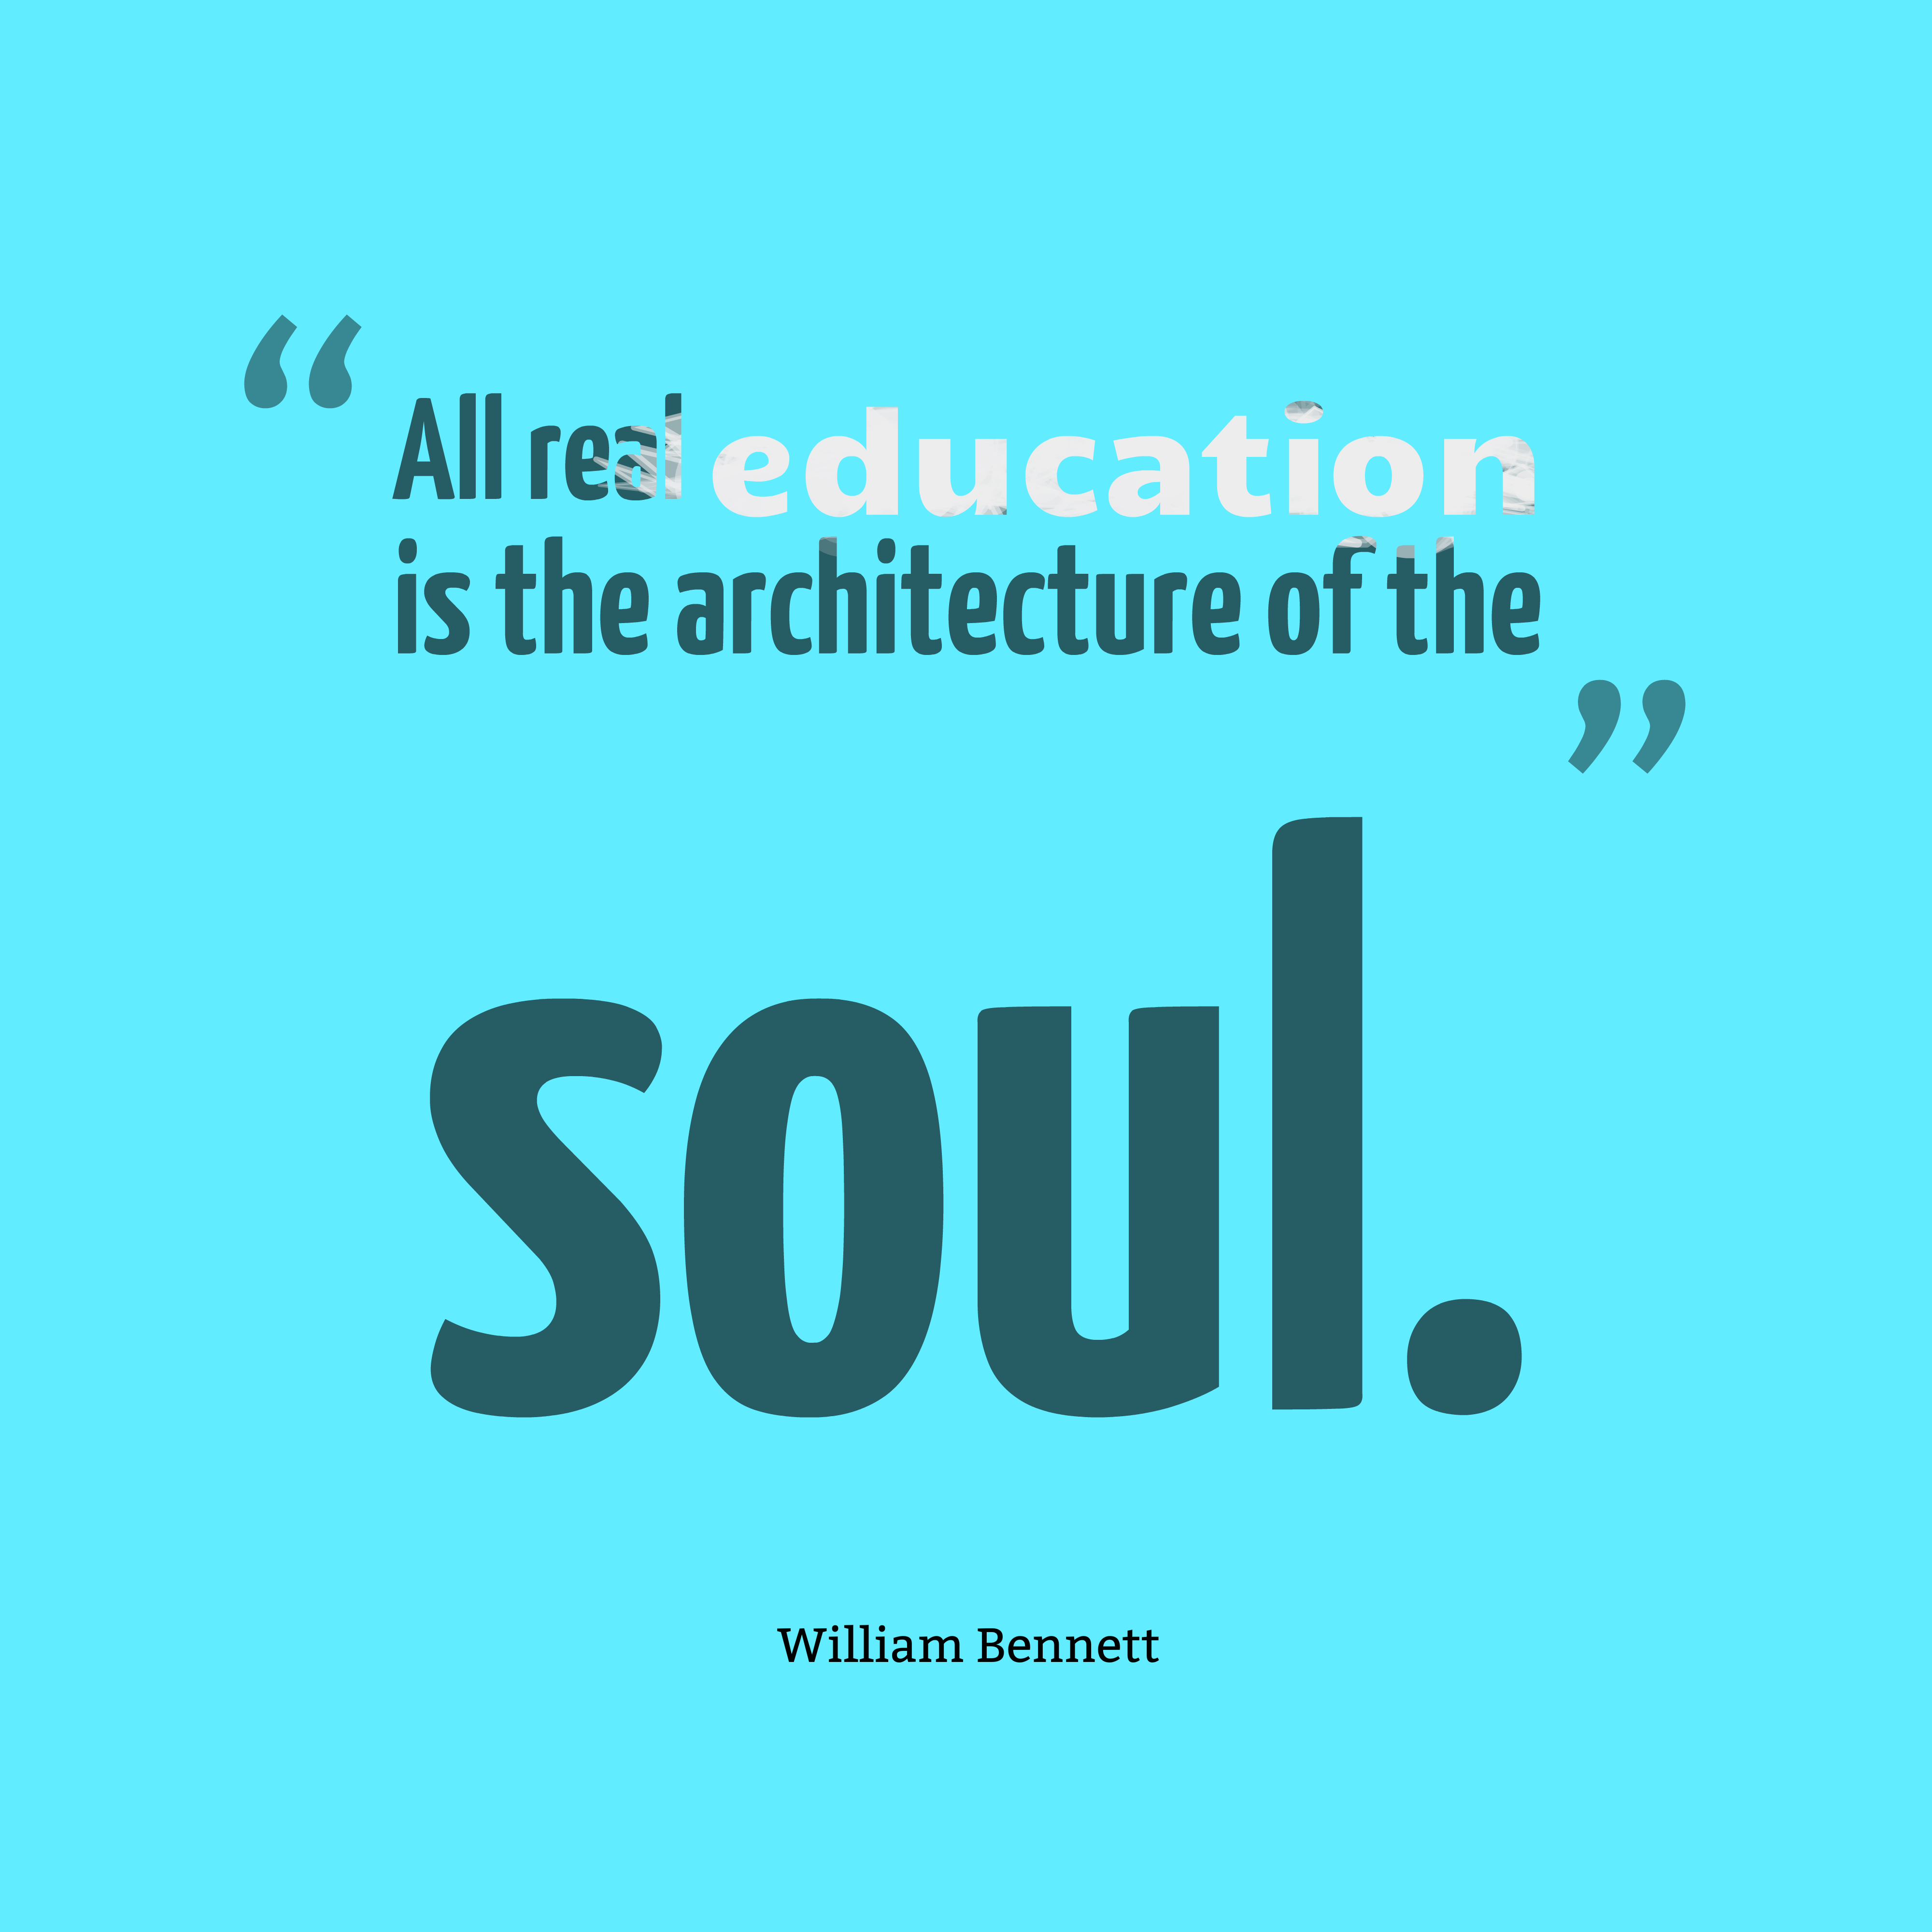 Quotes image of All real education is the architecture of the soul.